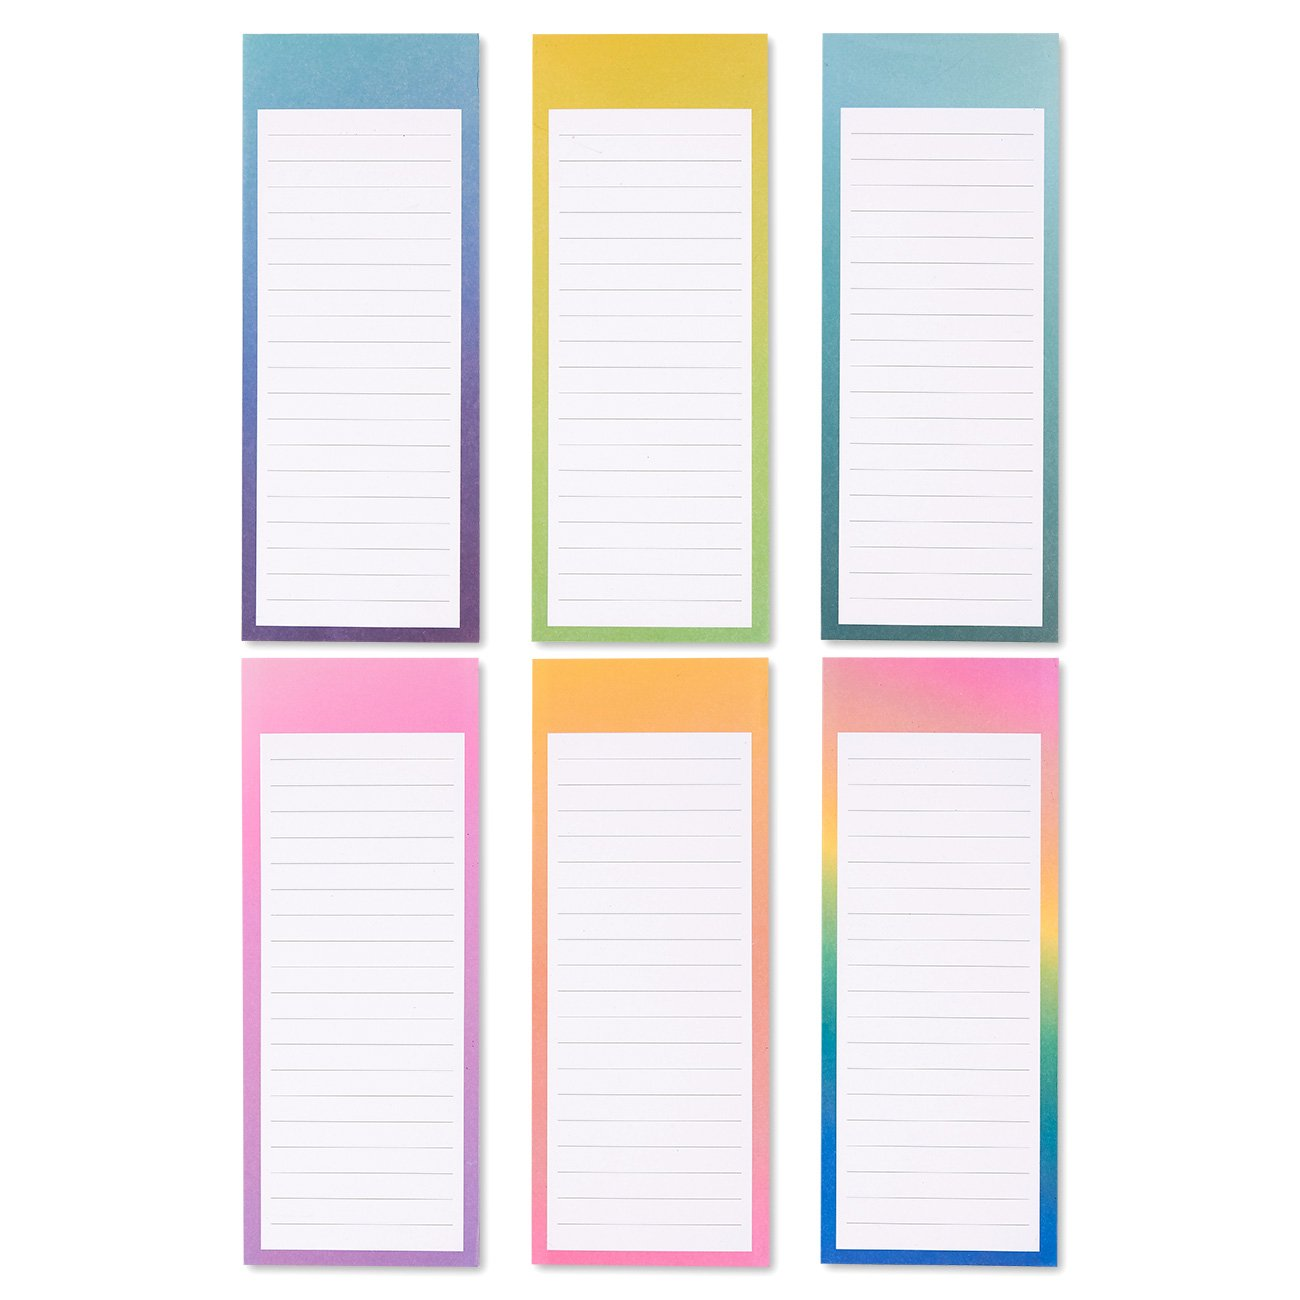 To-do-List Notepad - 12-Pack Magnetic Notepads, Fridge Grocery List Magnet Memo Pad for Shopping, To Do List, Reminders, House Chores, 6 Different Watercolor Designs, 60 Sheets Per Pad, 3.5 x 9 Inches by Juvale